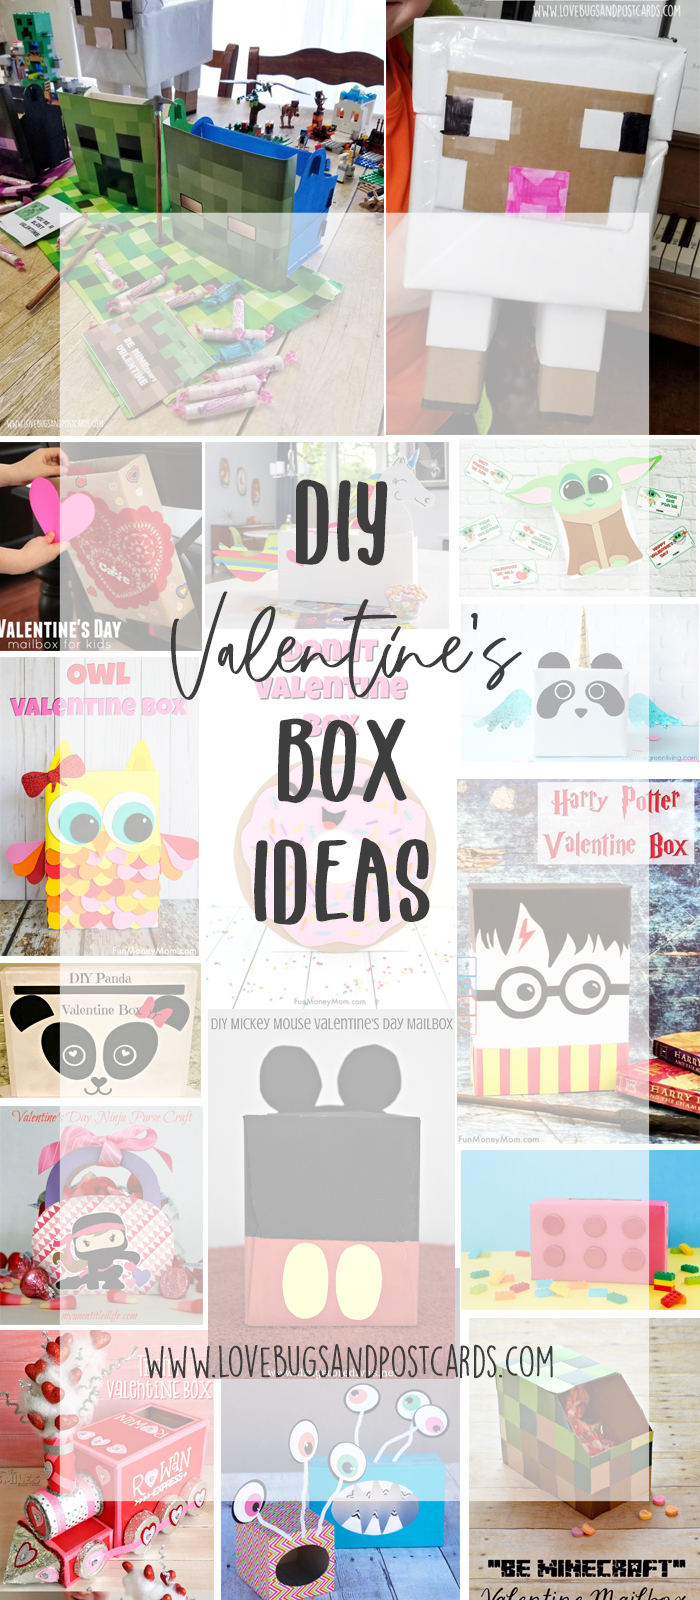 15+ Valentine's Box Ideas